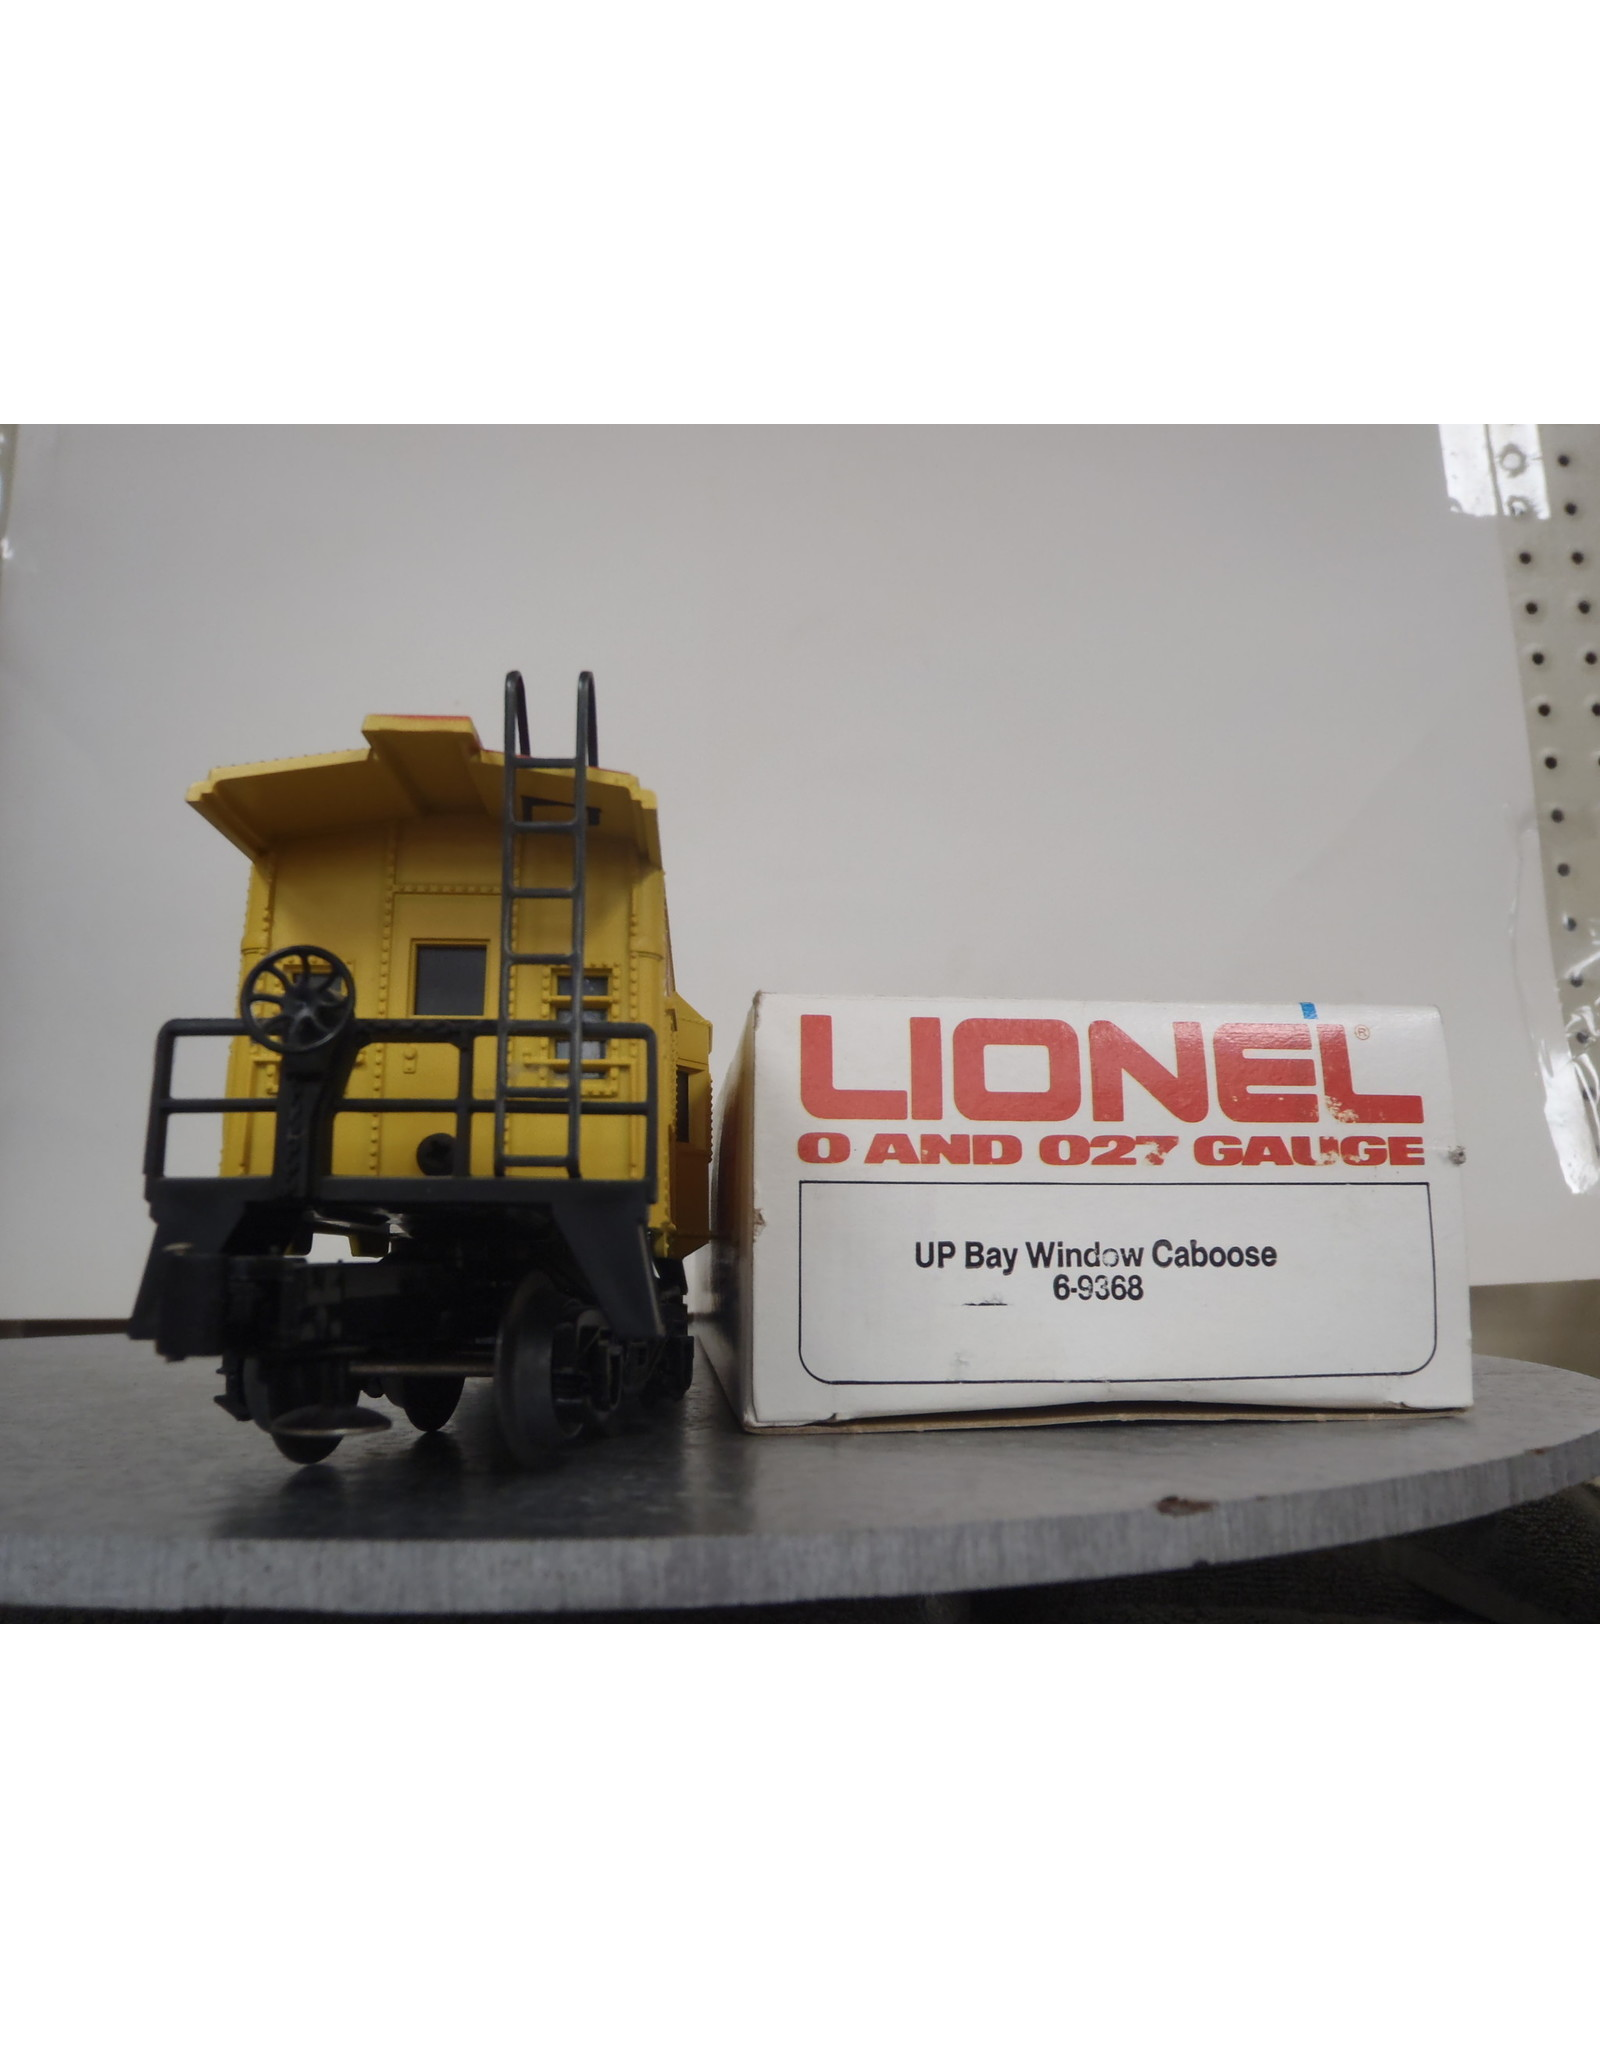 Lionel Caboose Window Union Pacific Lighted 9368